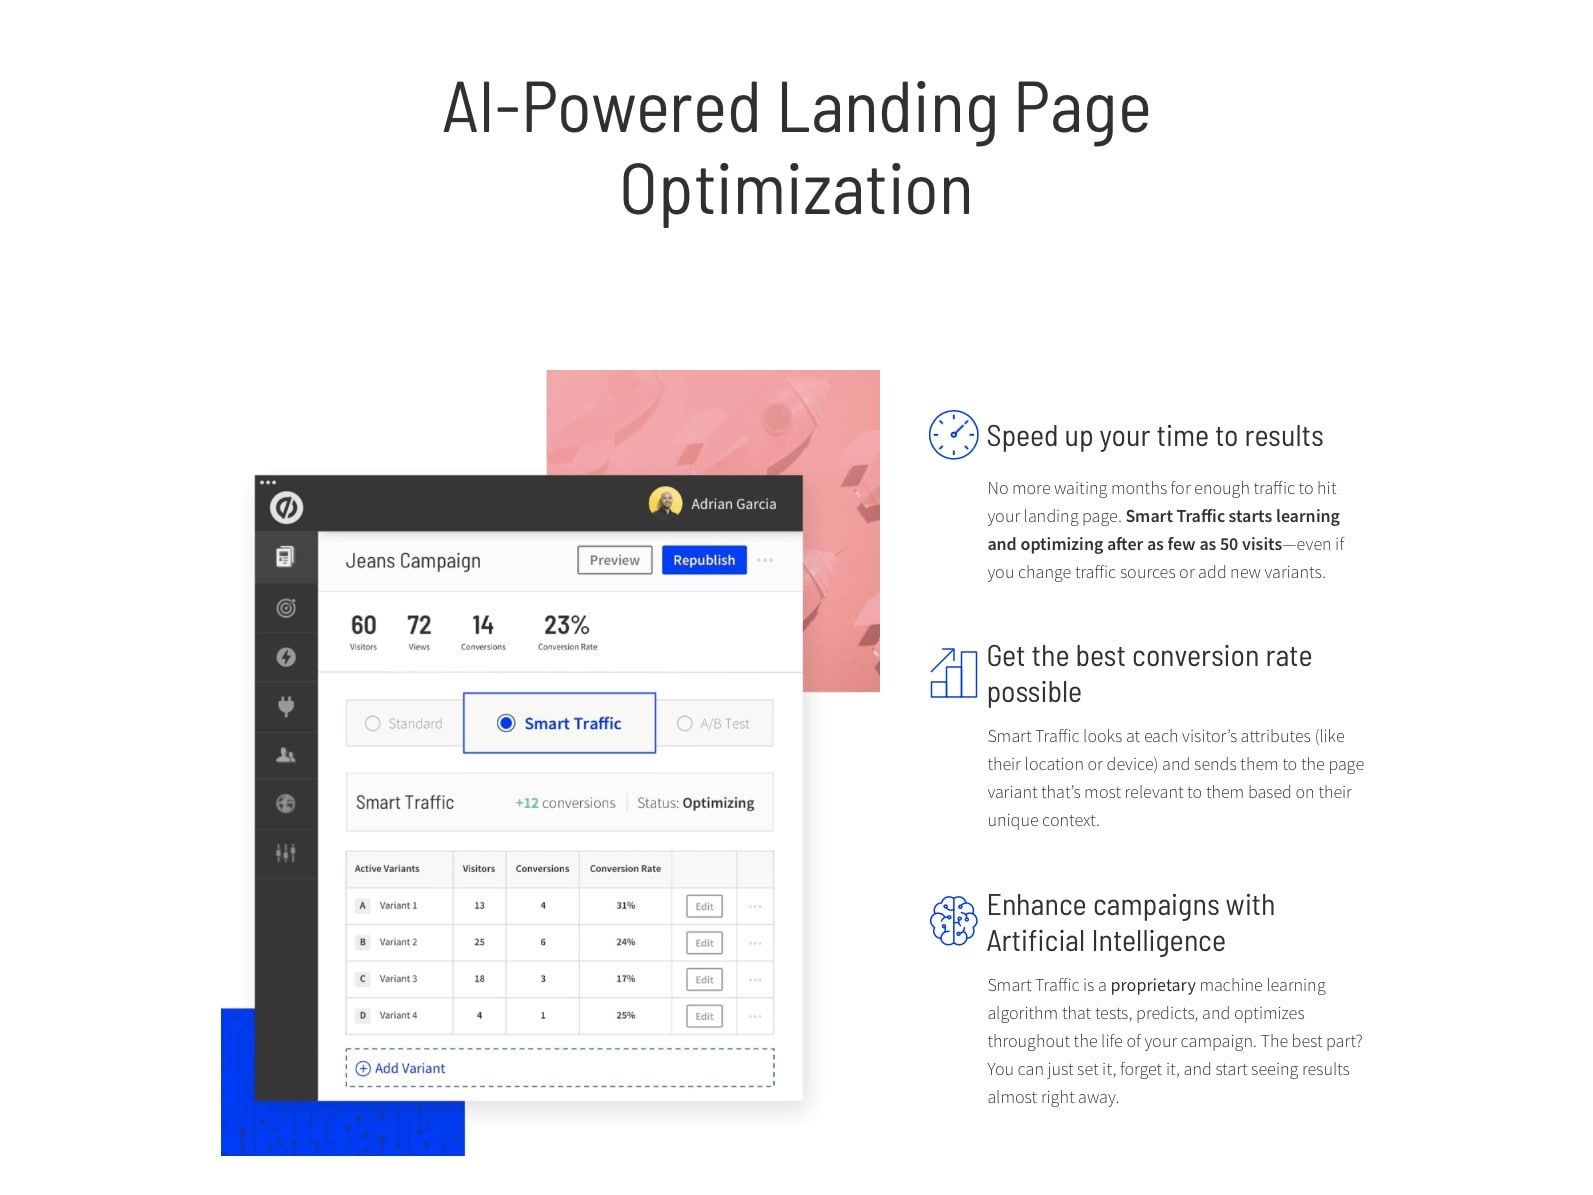 AI-Powered Landing Pages